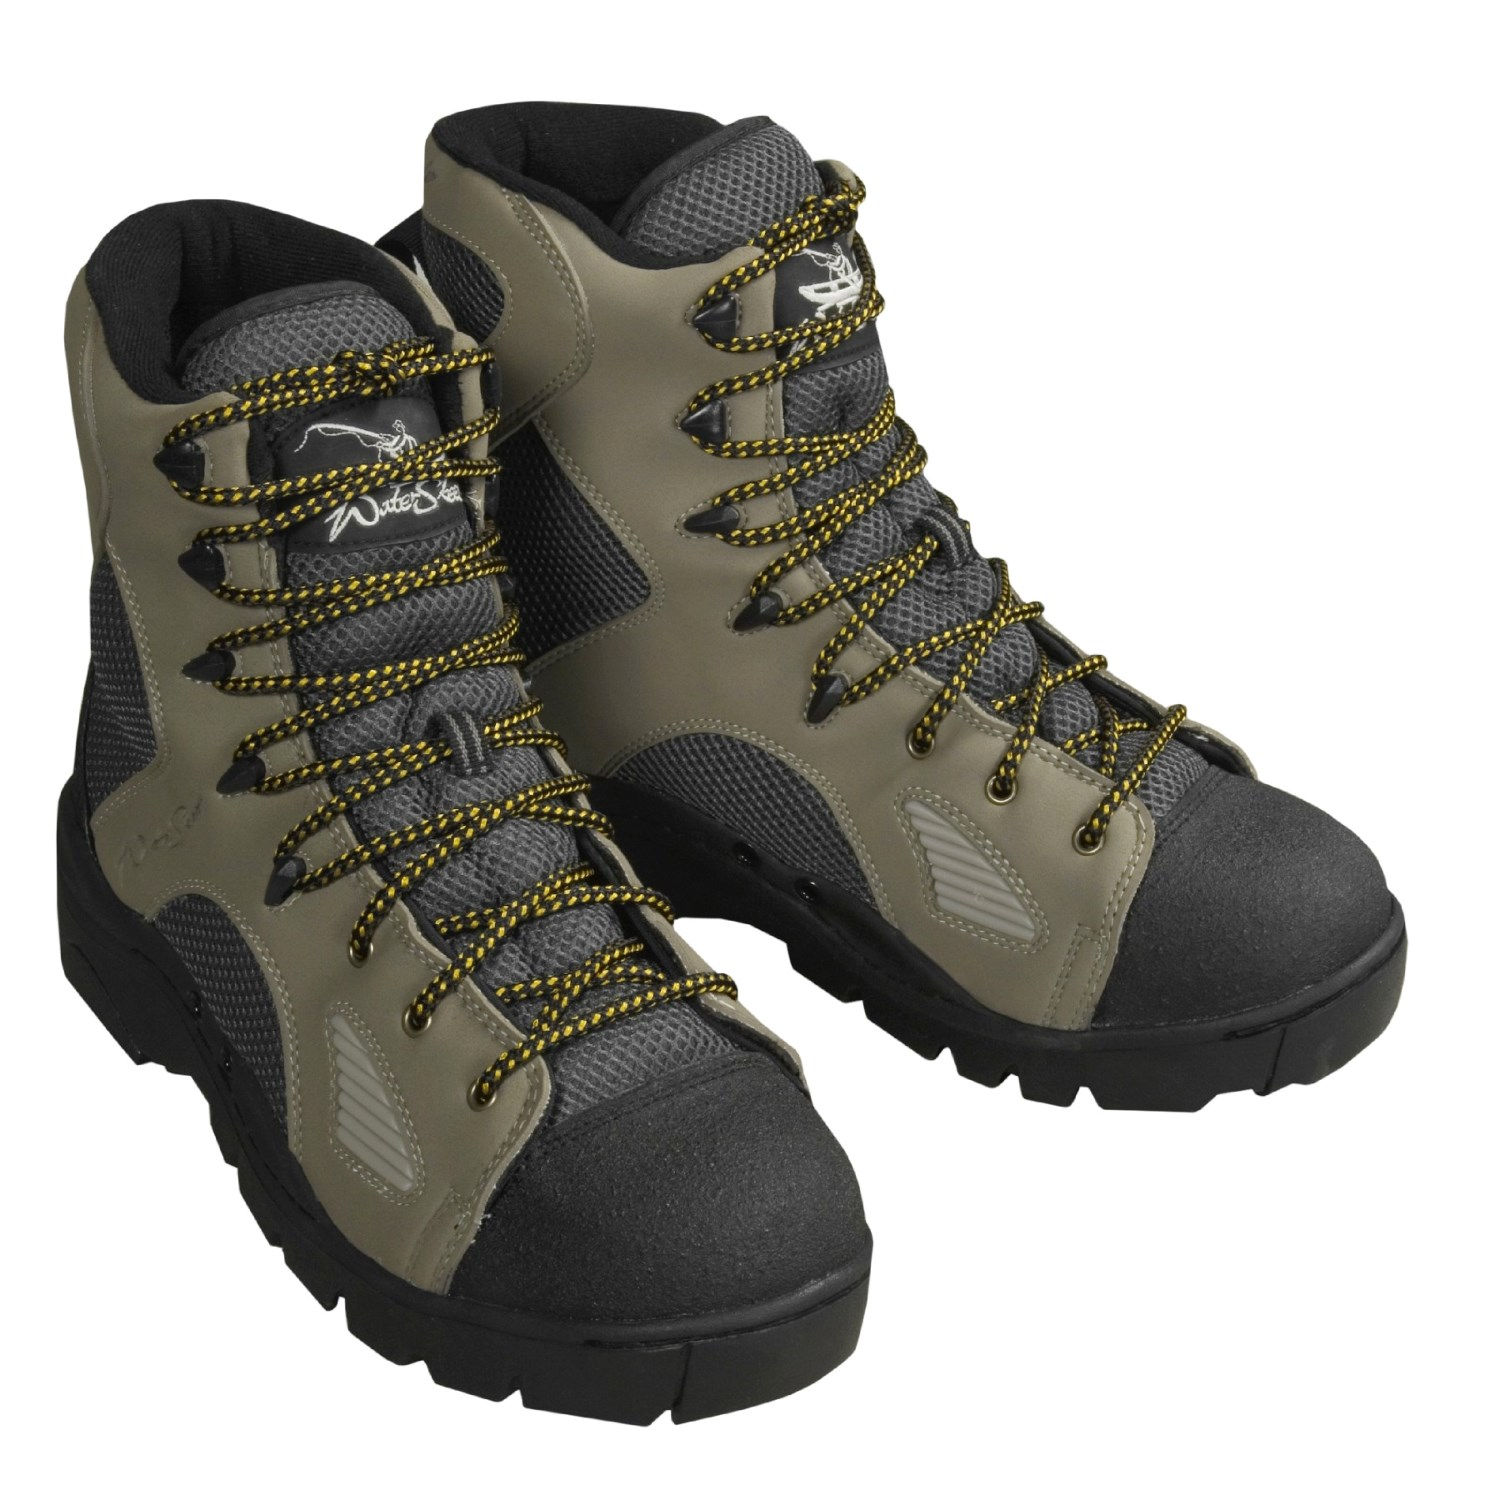 Find great deals on eBay for skeeter shoes. Shop with confidence.